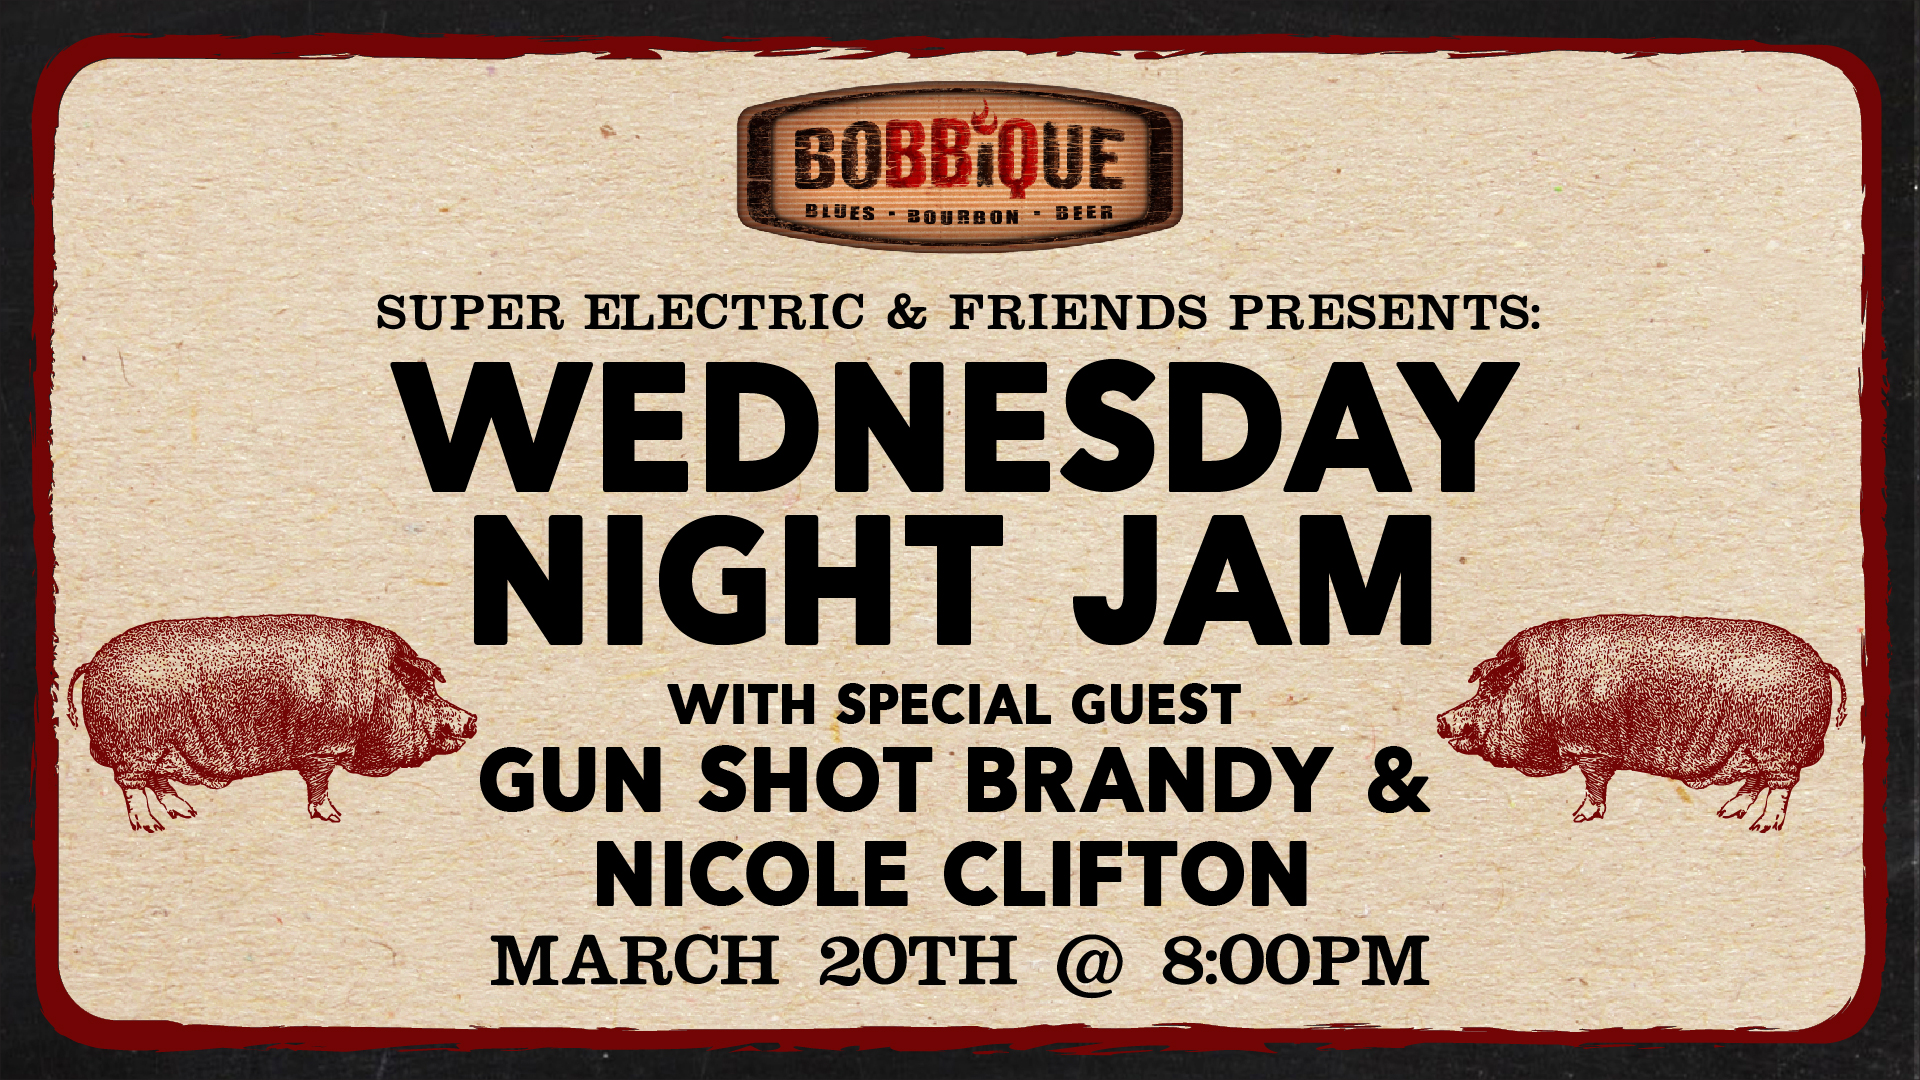 Wednesday Night Jam with Super Electric & Friends